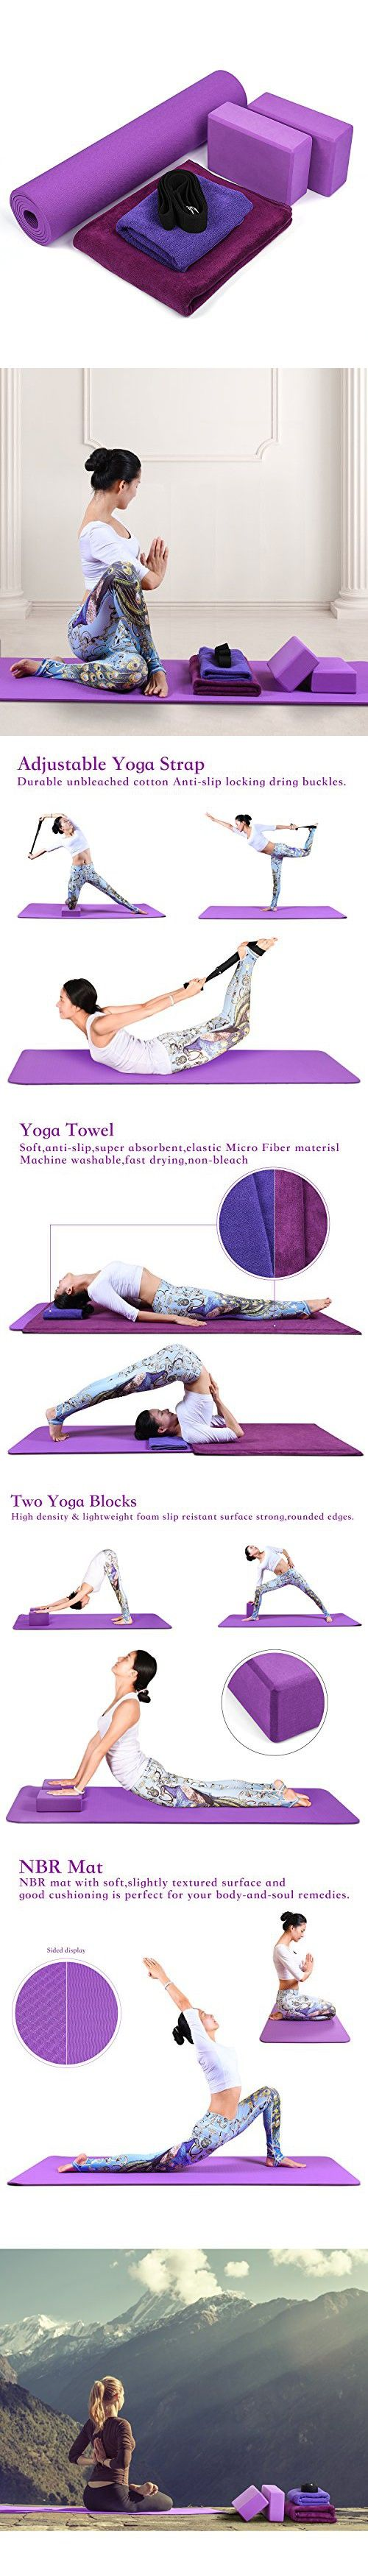 d12a643a2f Fitian Yoga Starter Kit 6 Piece-include 1 Yoga Mat, 2 Yoga Blocks, 1 Yoga  Strap, 1 Yoga Mat Towel, 1 Yoga Hand Towel Purple